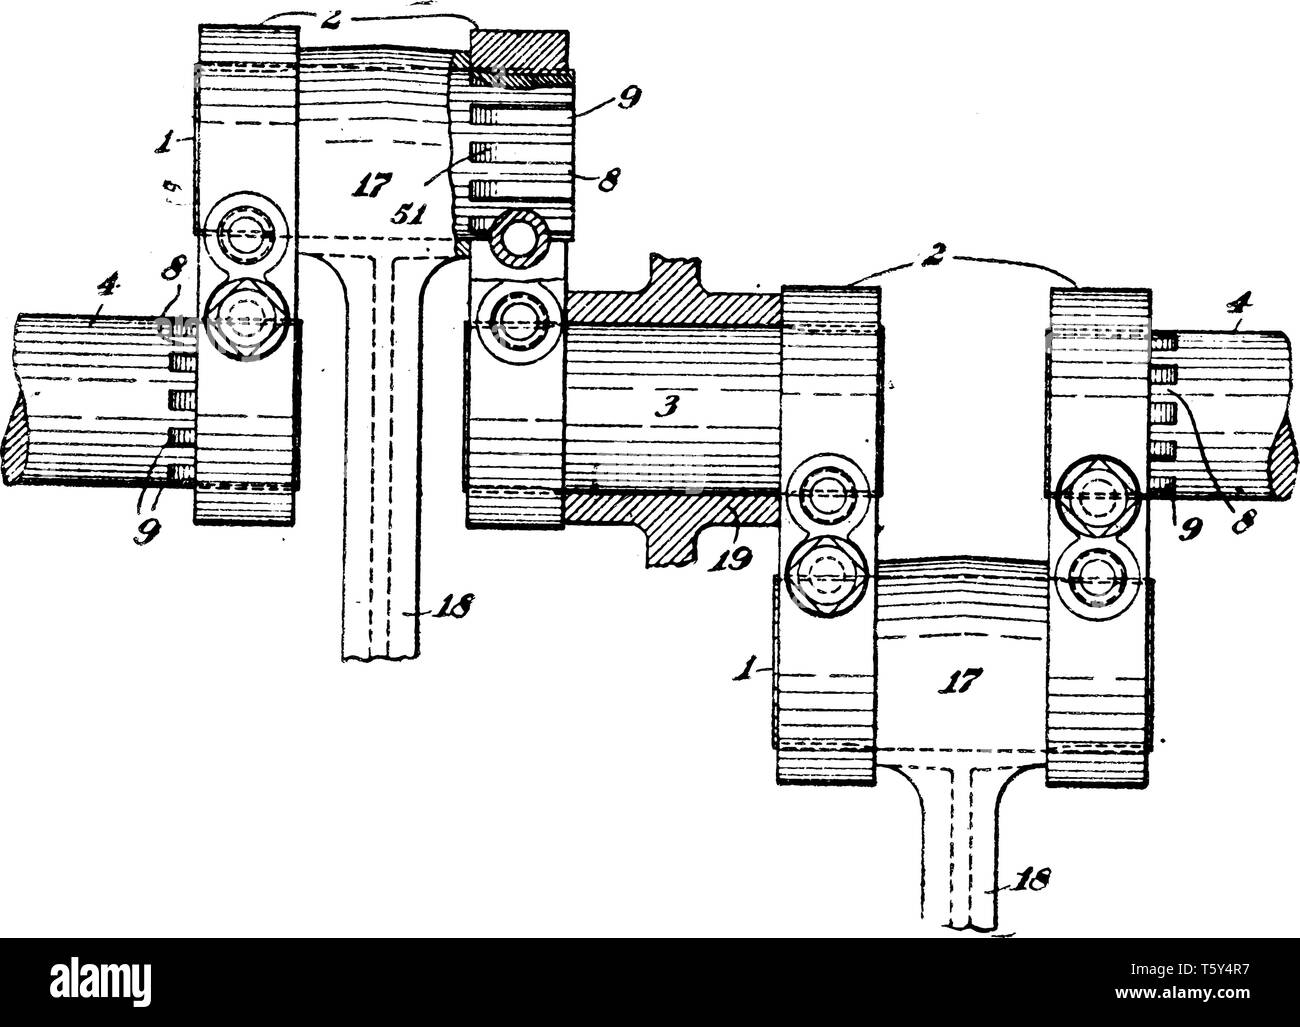 hight resolution of crank shaft is the part of an engine which translates reciprocating linear piston motion into rotation